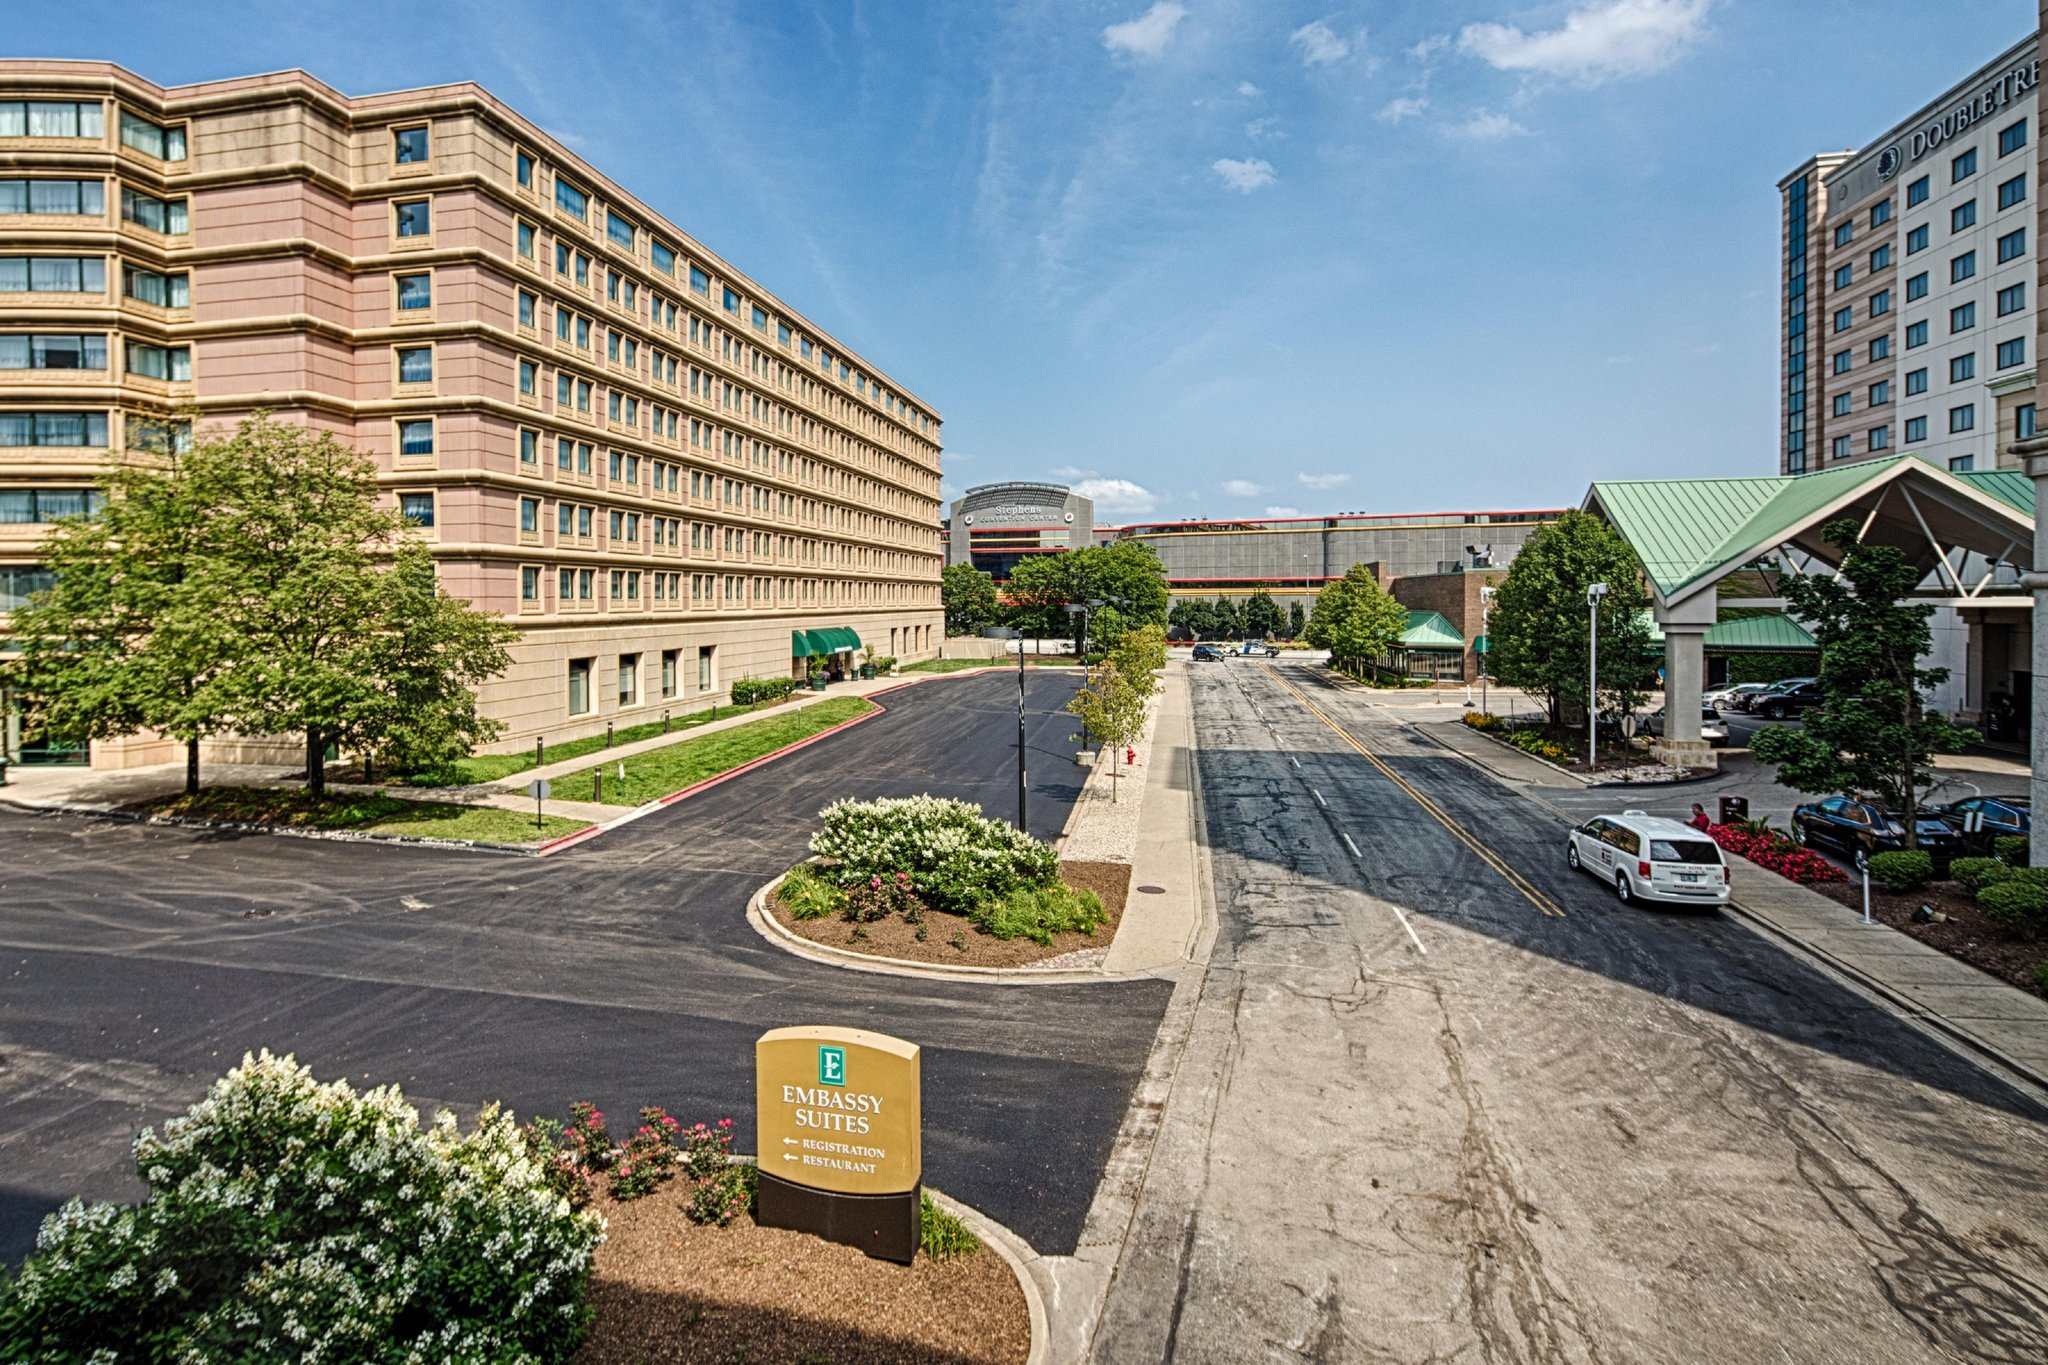 Embassy Suites by Hilton Chicago O*Hare Rosemont